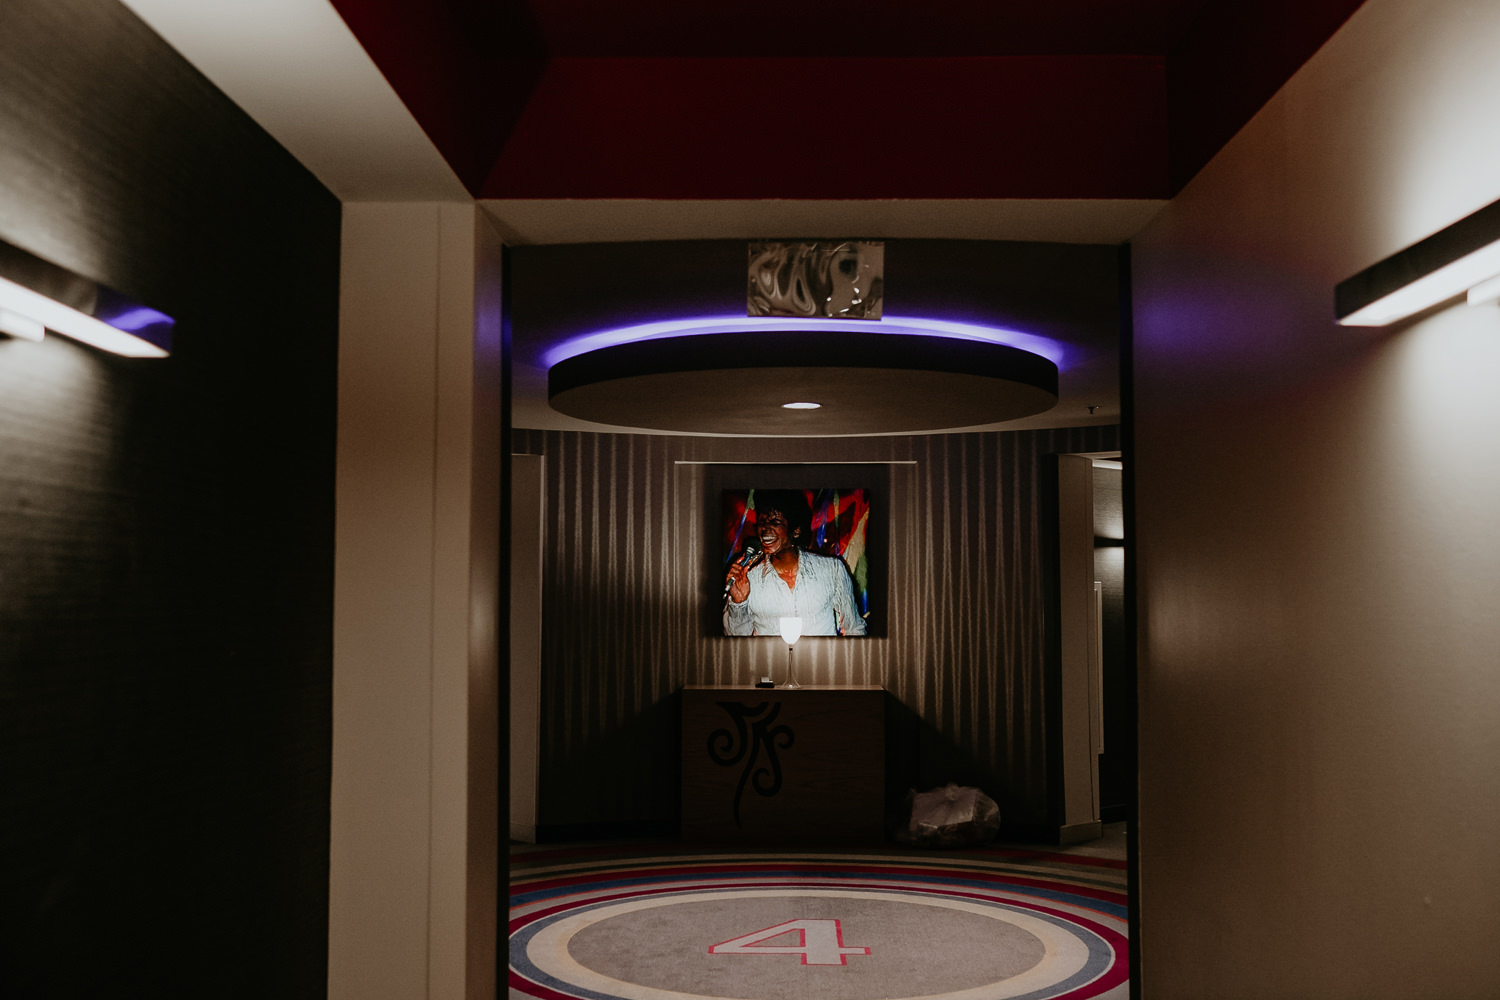 view of hard rock hotel hallway with Michael Jackson painting